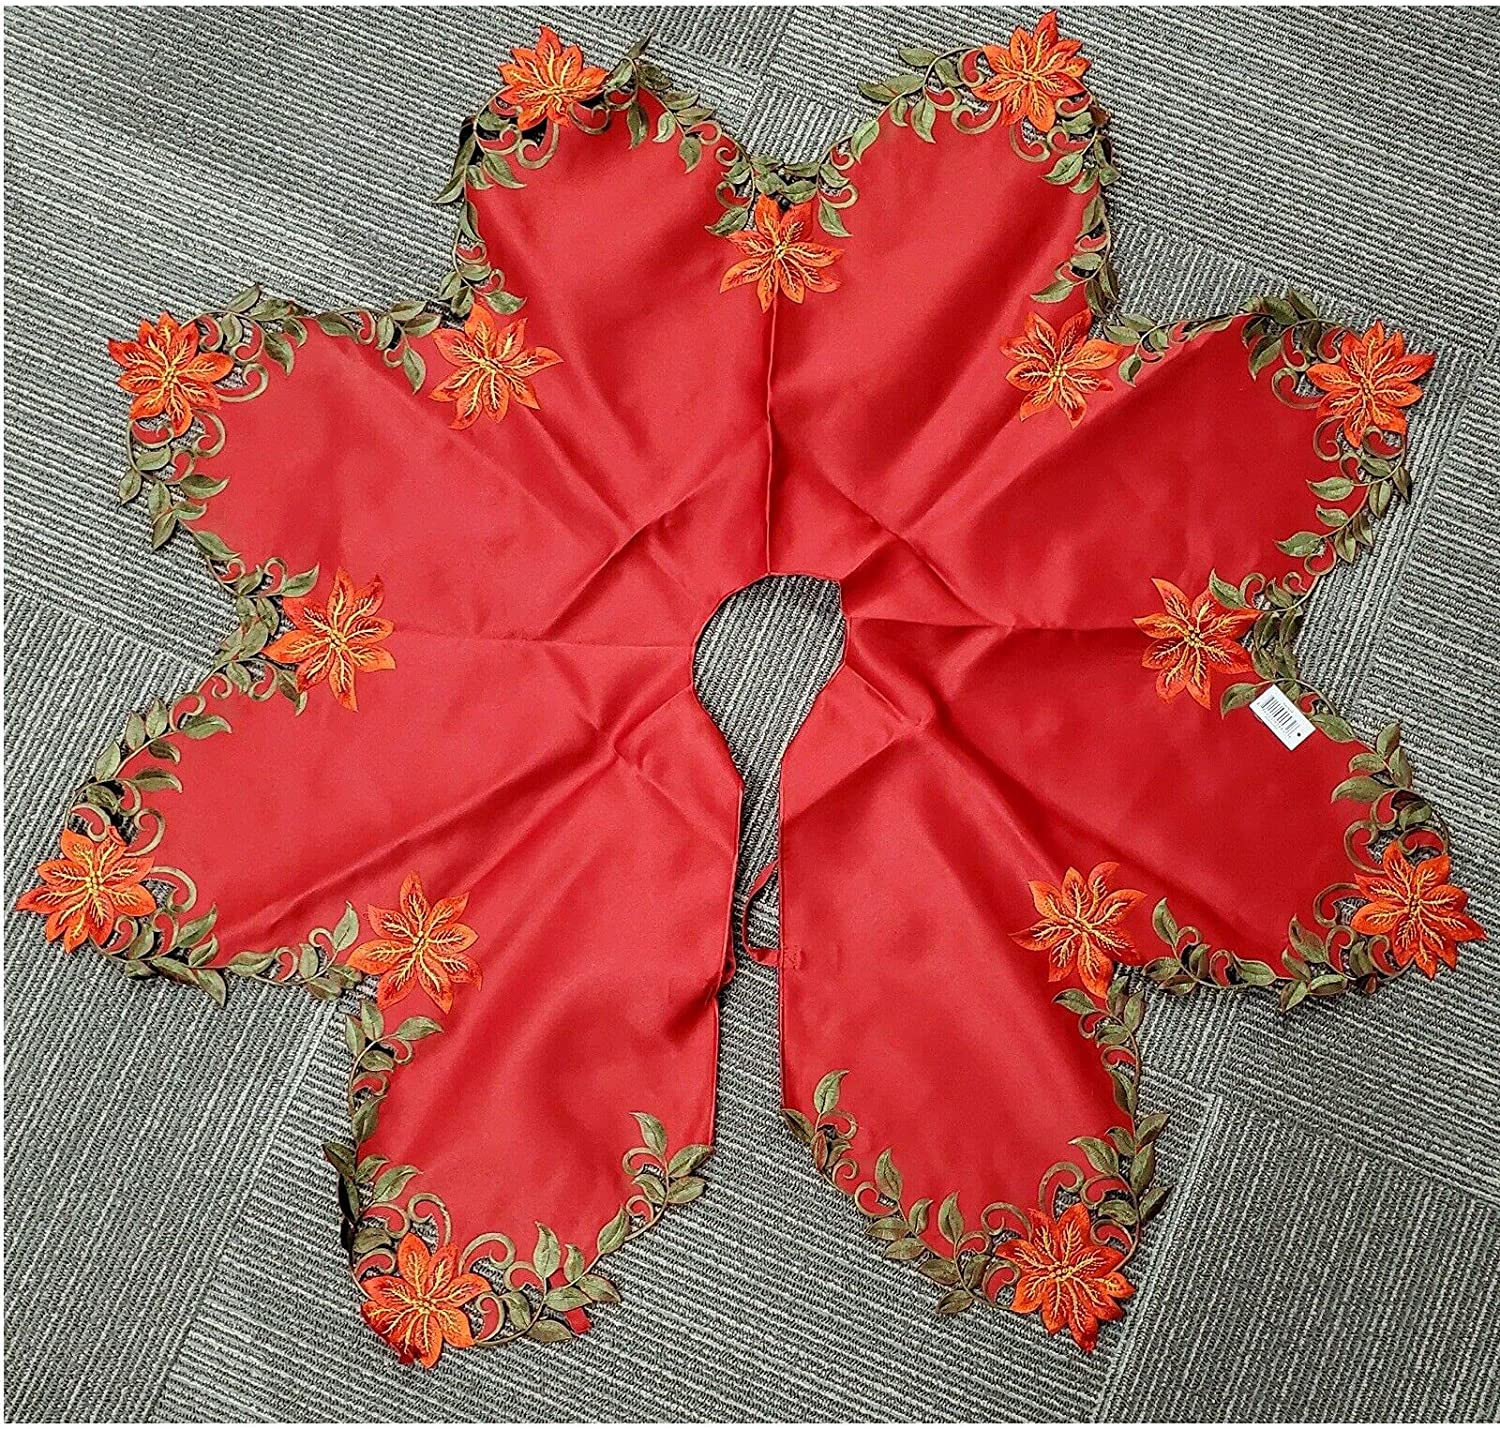 The Decor That is Adored Max 77% OFF Red Christmas Cutout S Max 79% OFF Tree Embroidered